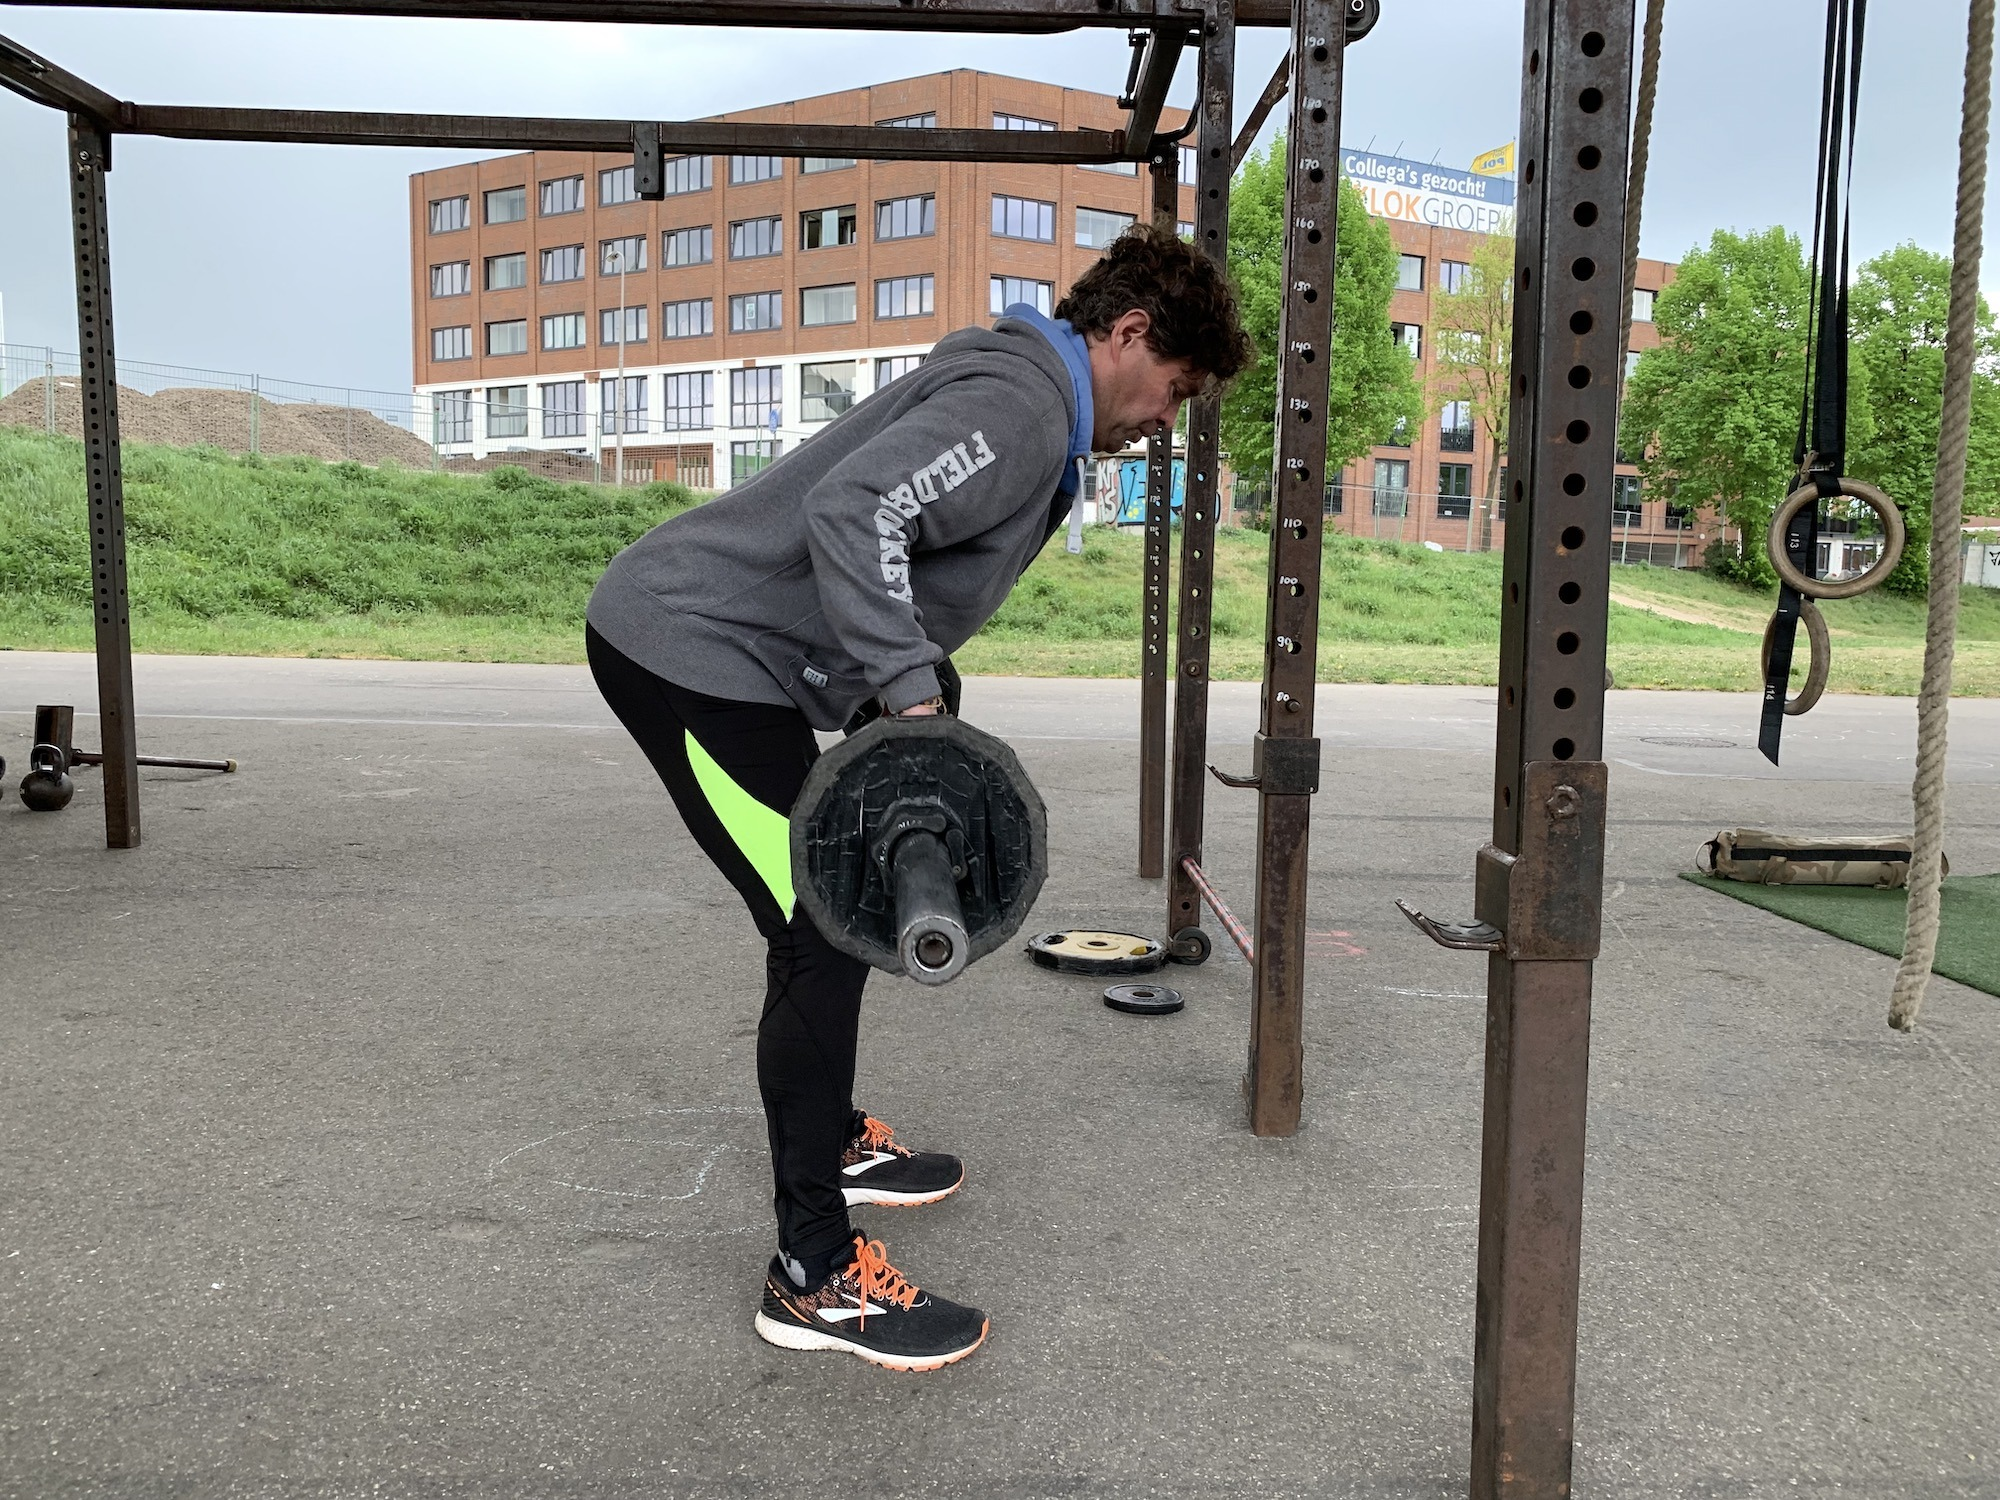 NYMA OUTDOOR GYM 24-04-2018